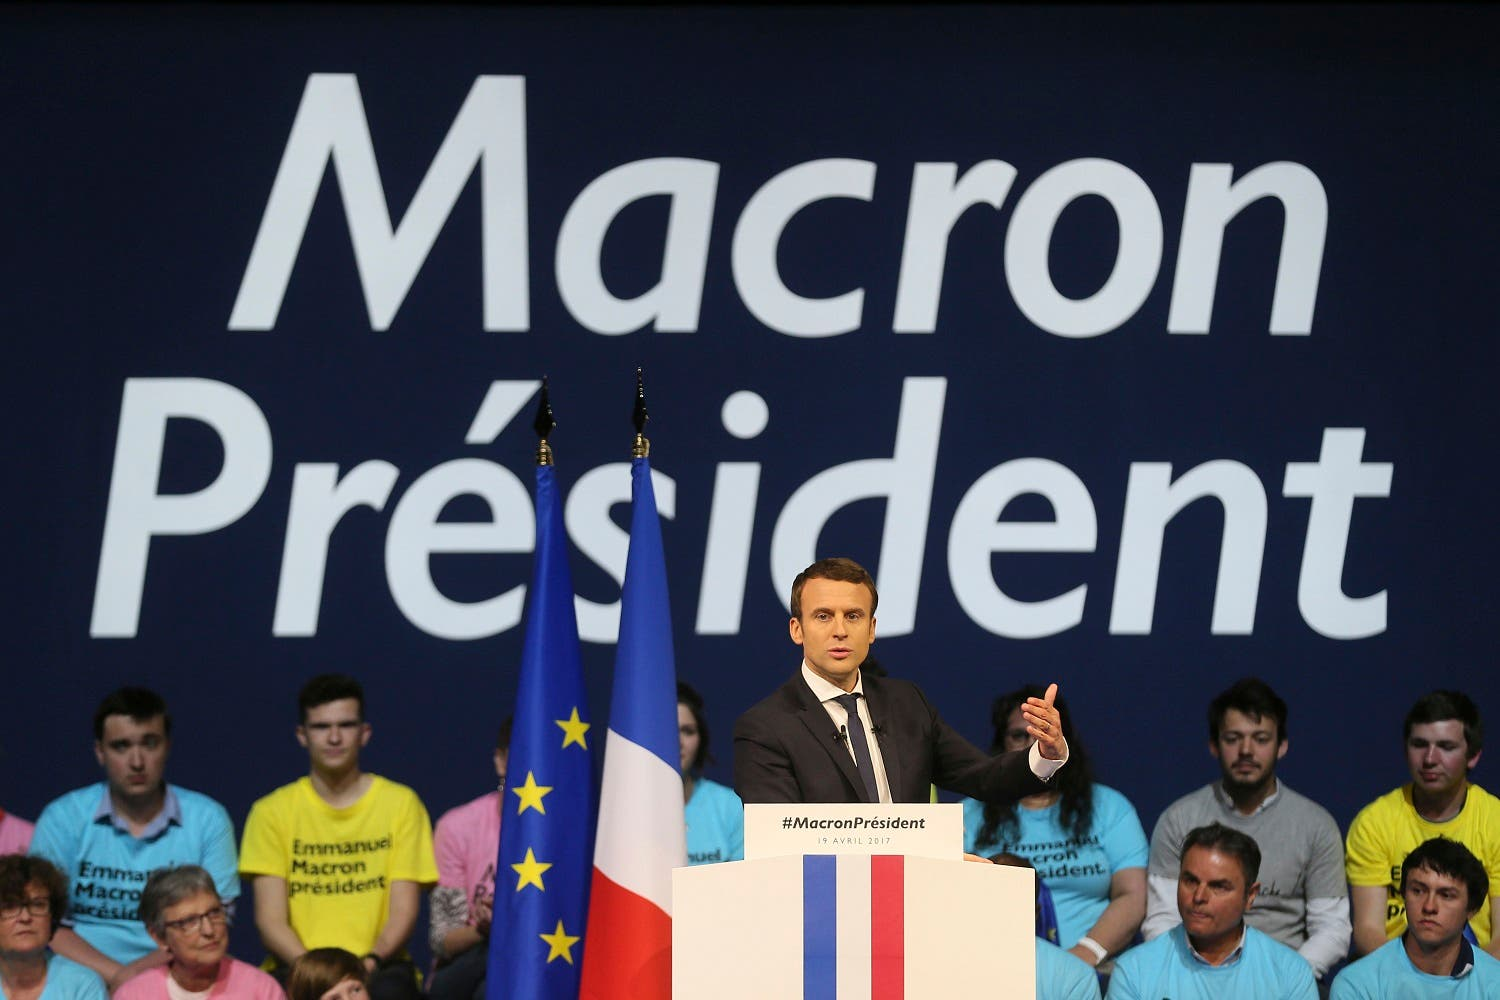 Emmanuel Macron delivers his speech during a meeting in Nantes, western France, on April 19, 2017. (AP)